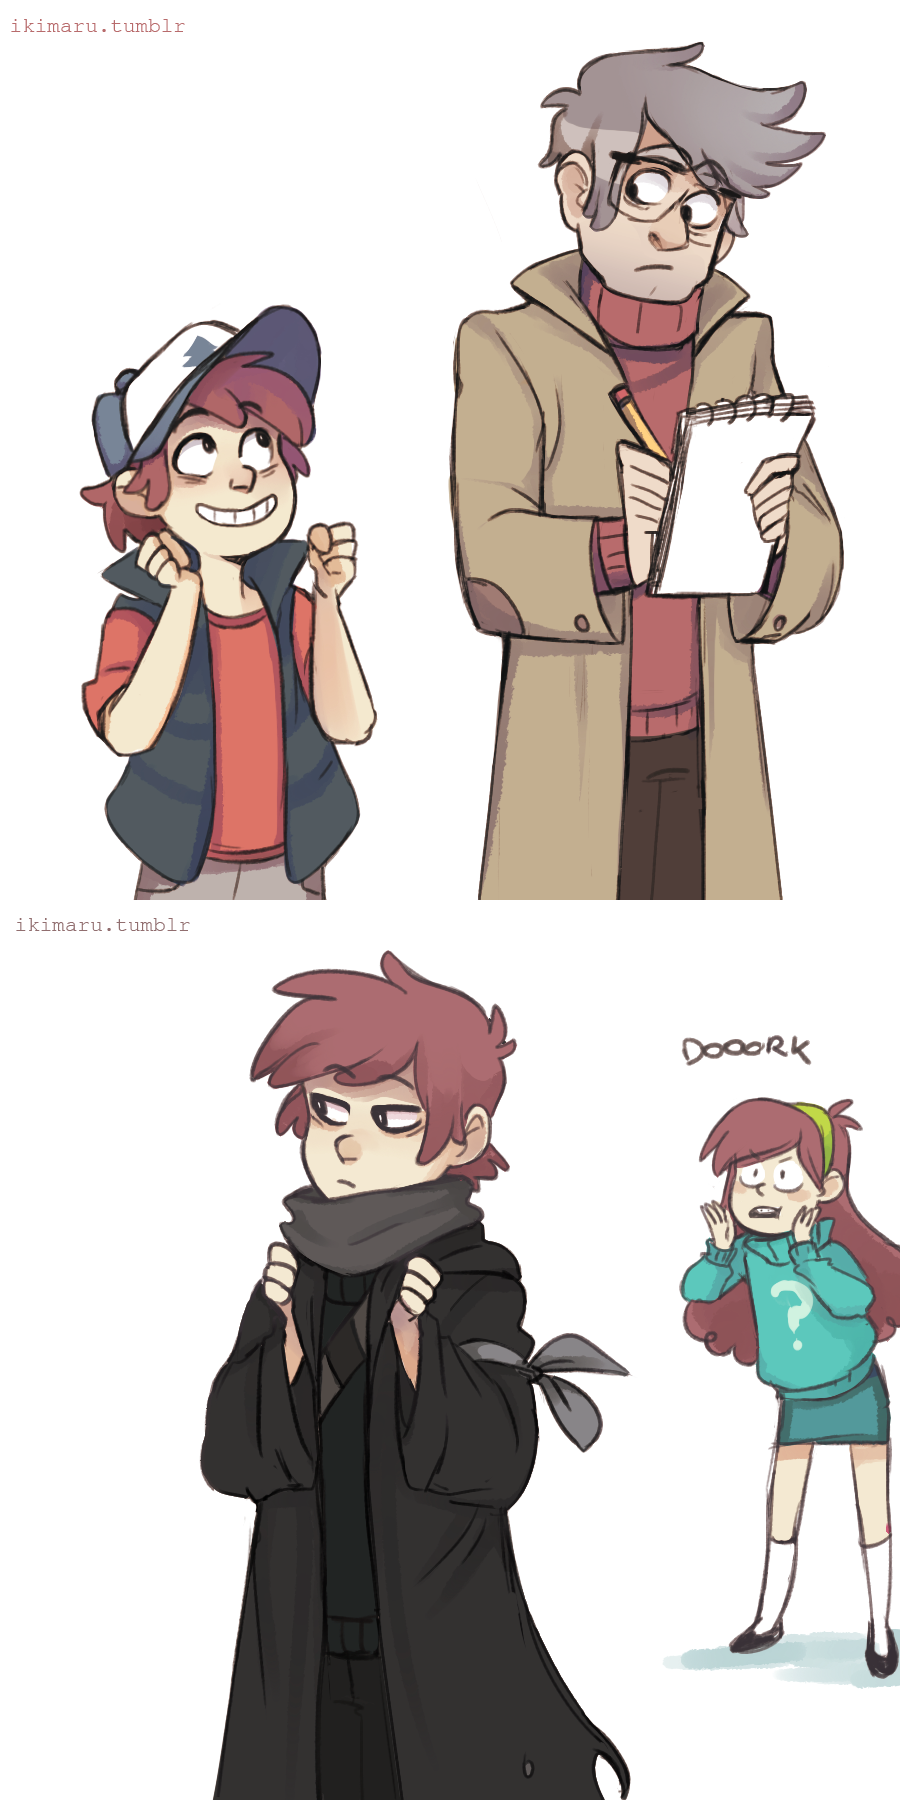 for that suggestion of Dipper being a fanboy and also dressing up as the author bc he'd think that is SO cool haha | Gravity Falls